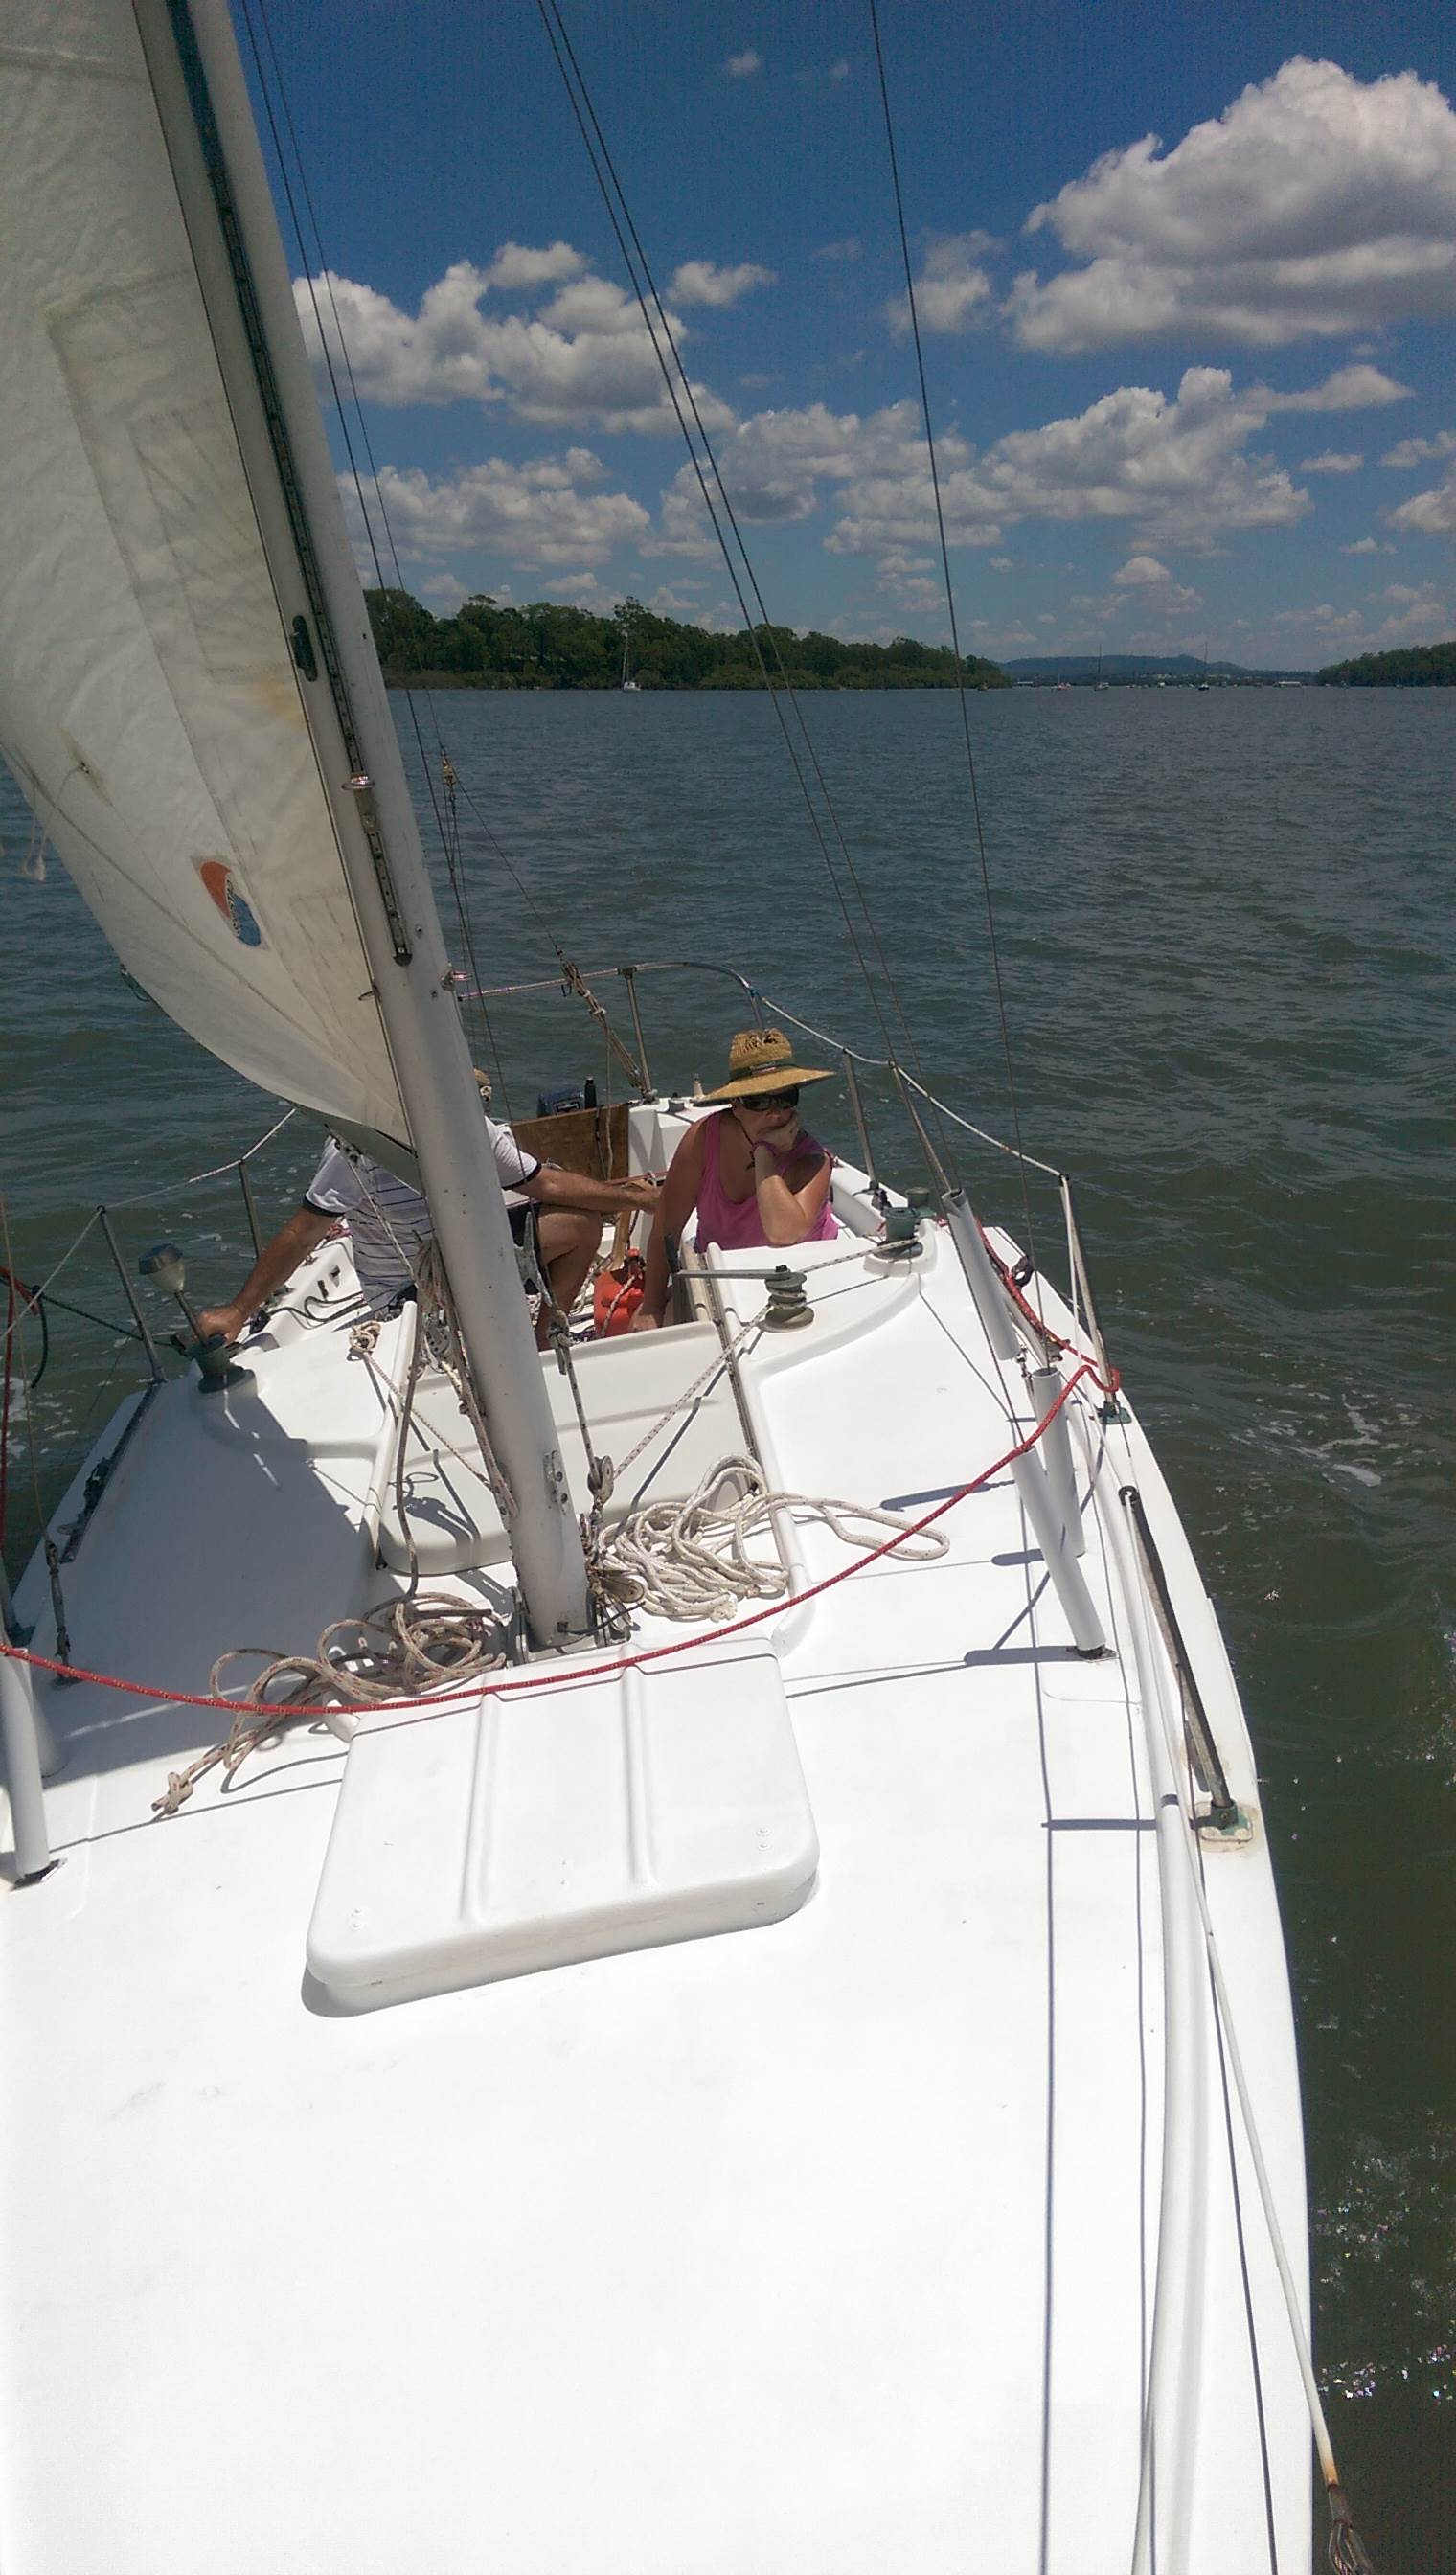 Where Did You Go On Your Sailing Boat Today?